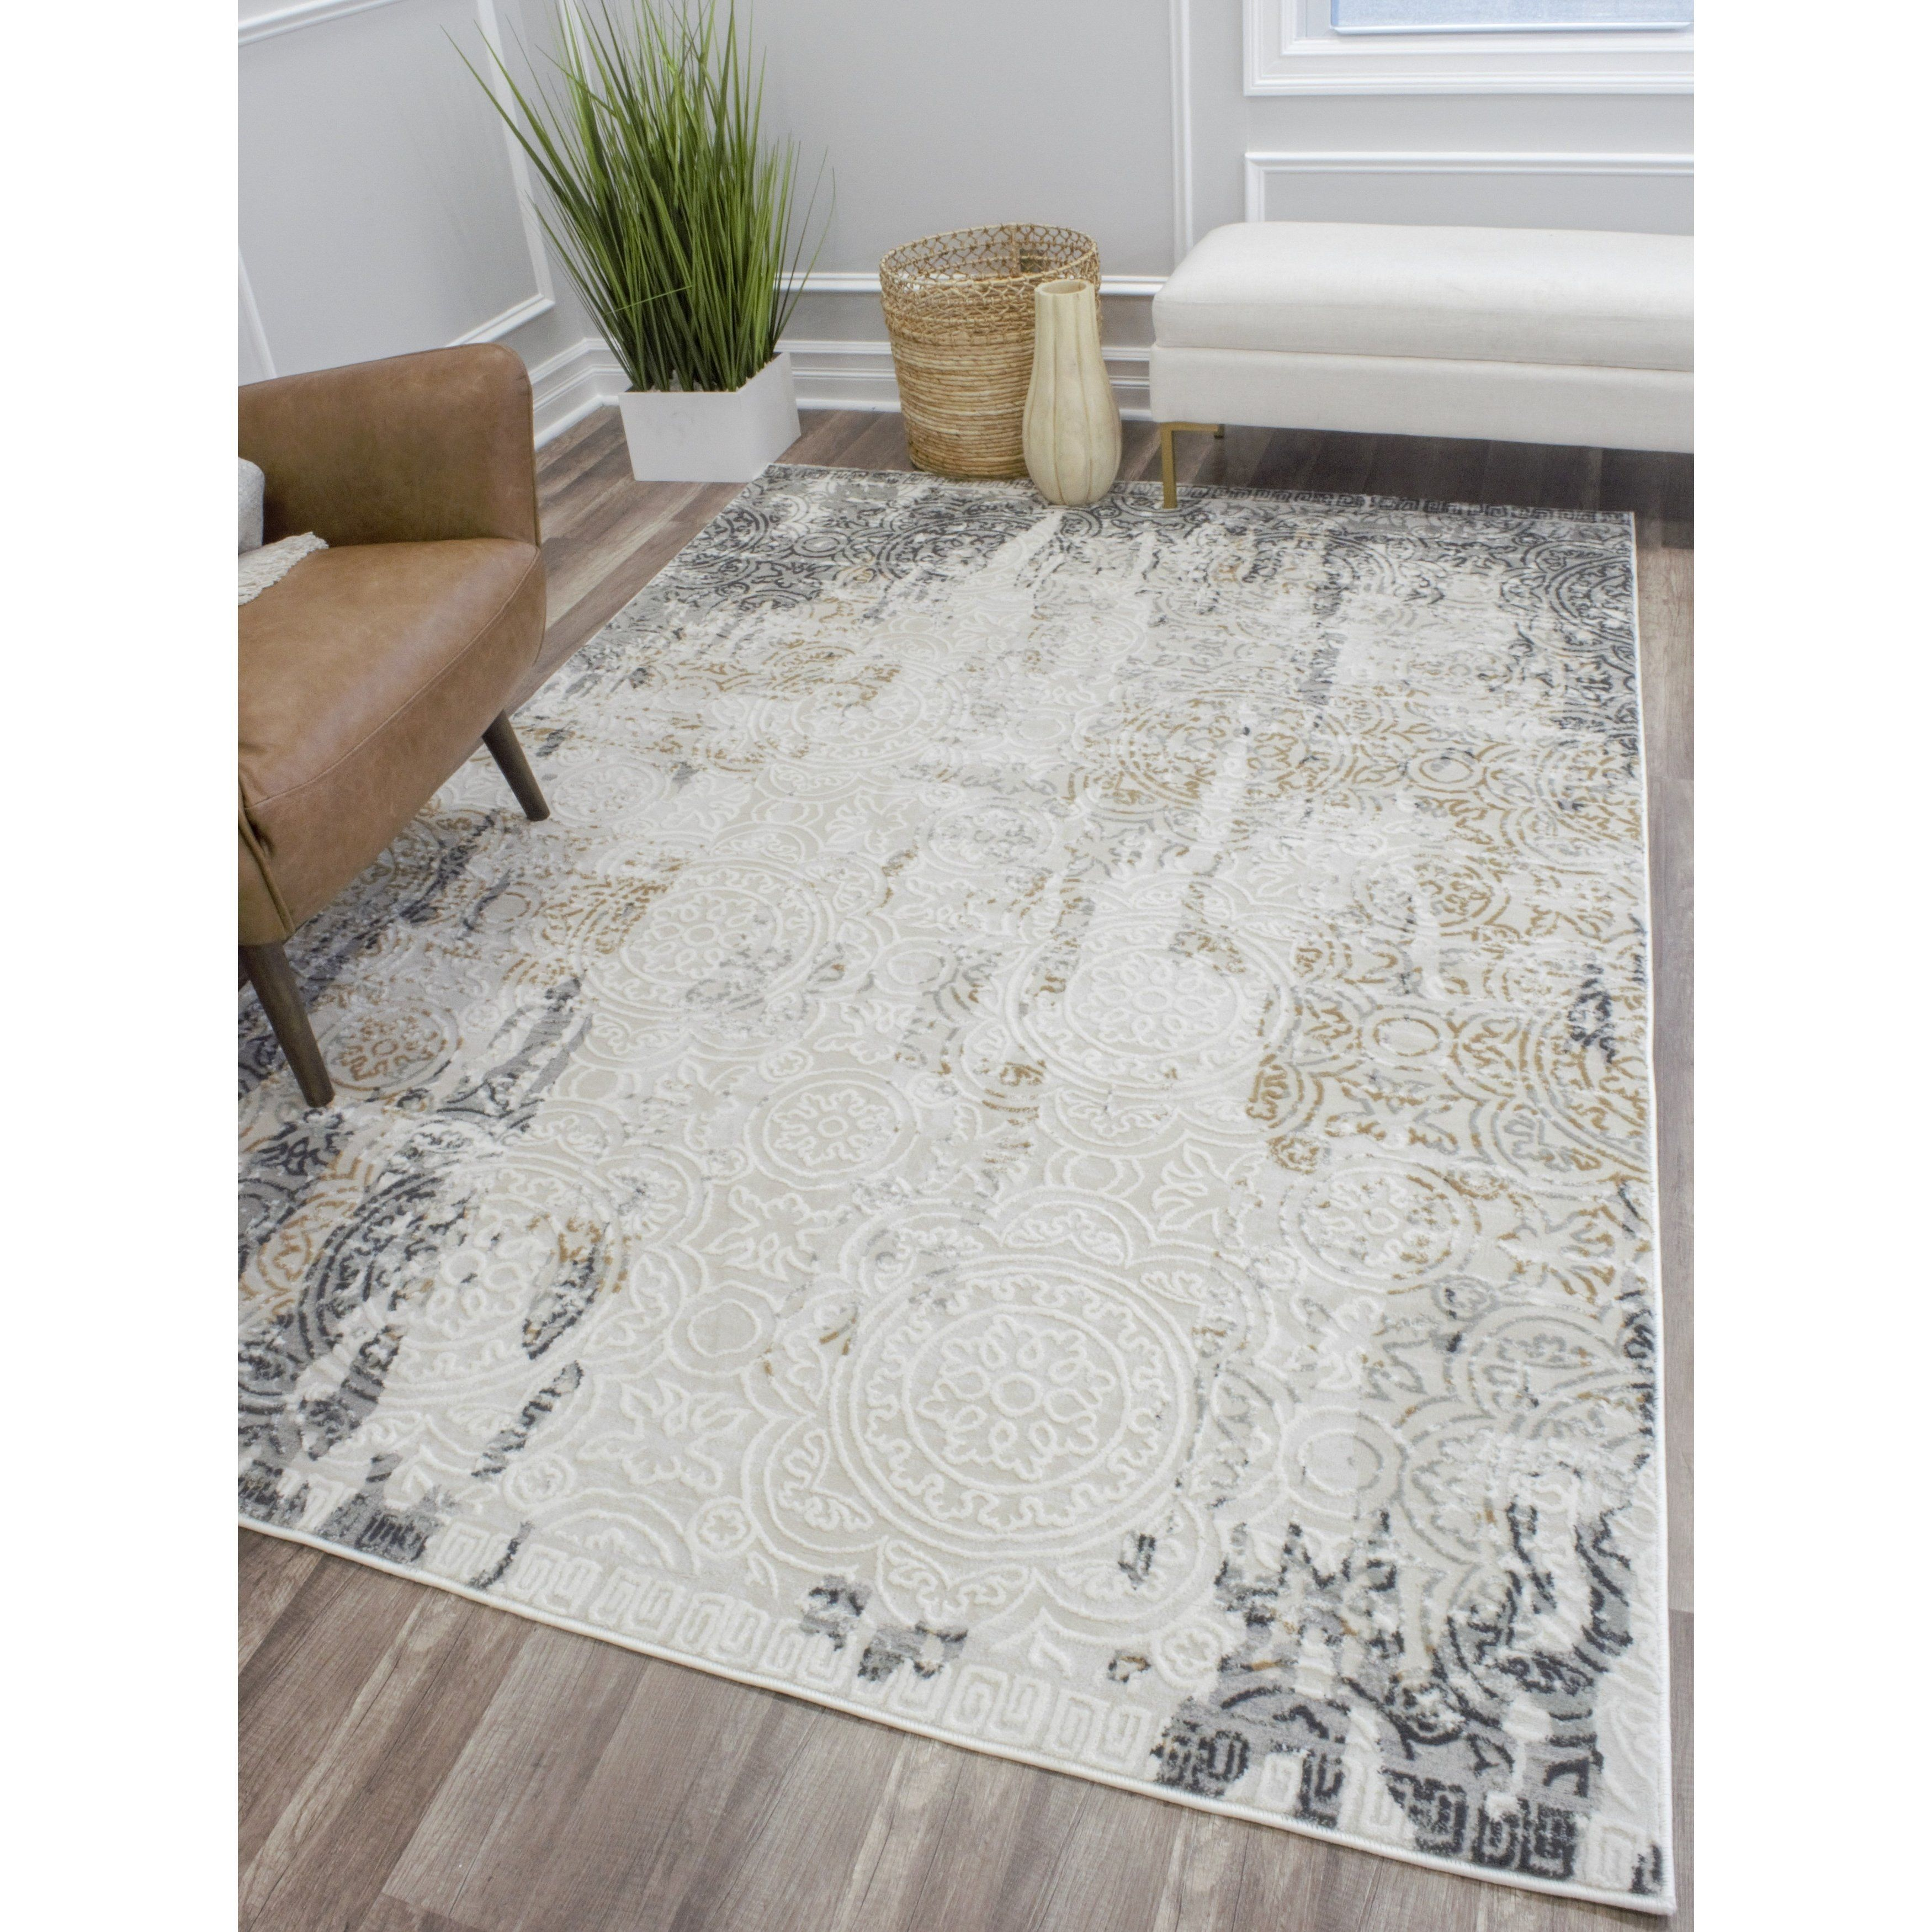 Cosmoliving Helena Rug 8 X 10 8 X10 Ivory Polyester Abstract Rugs Area Rugs Grey Area Rug